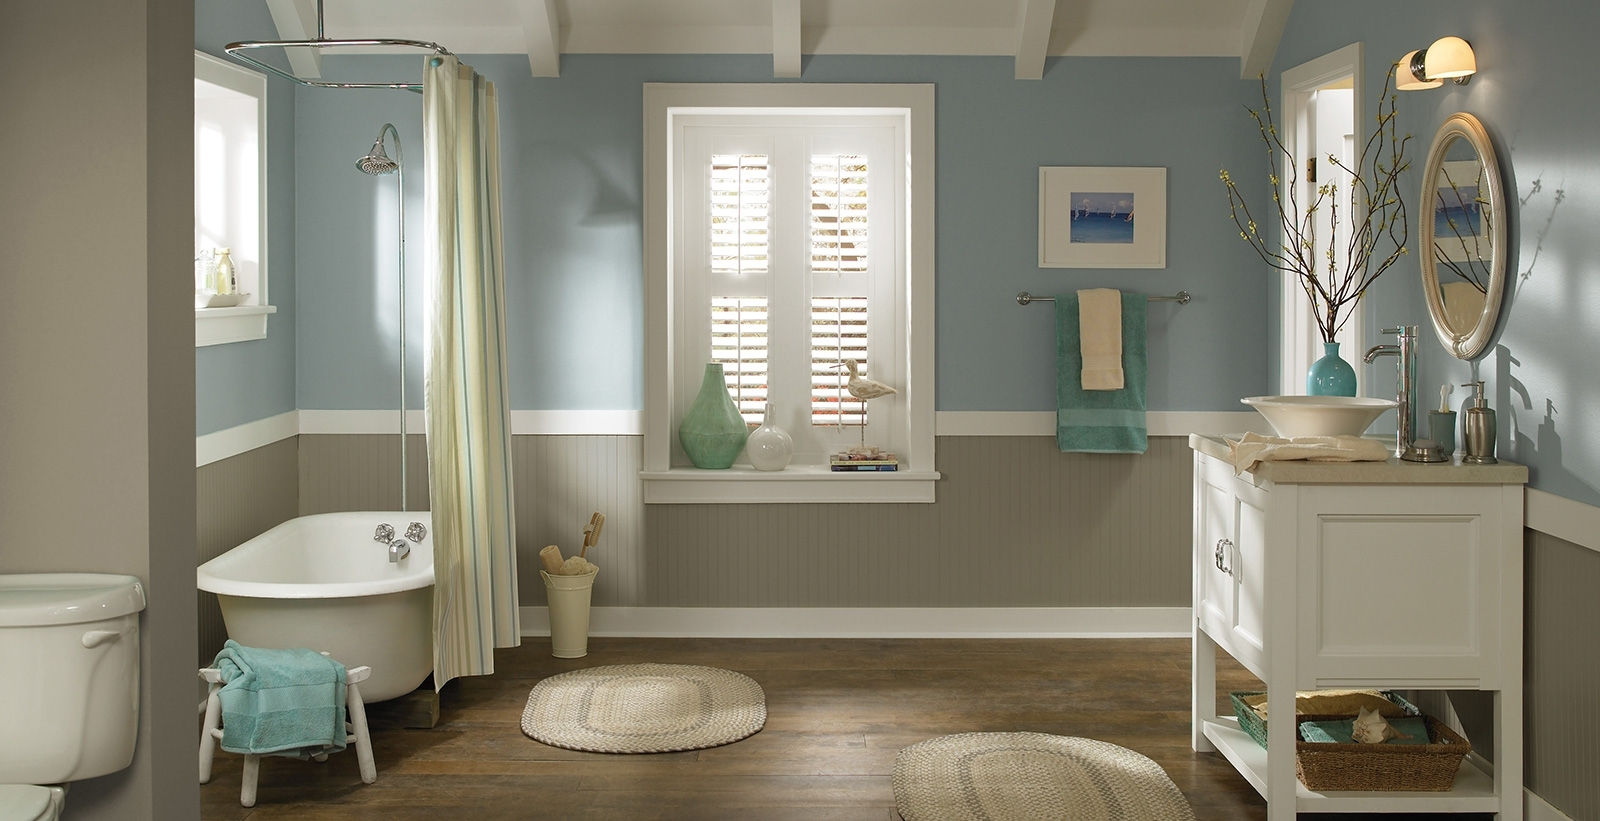 Casual Bathroom Ideas And Inspirational Paint Colors | Behr 40+ Behr Bathroom Color Inspirations